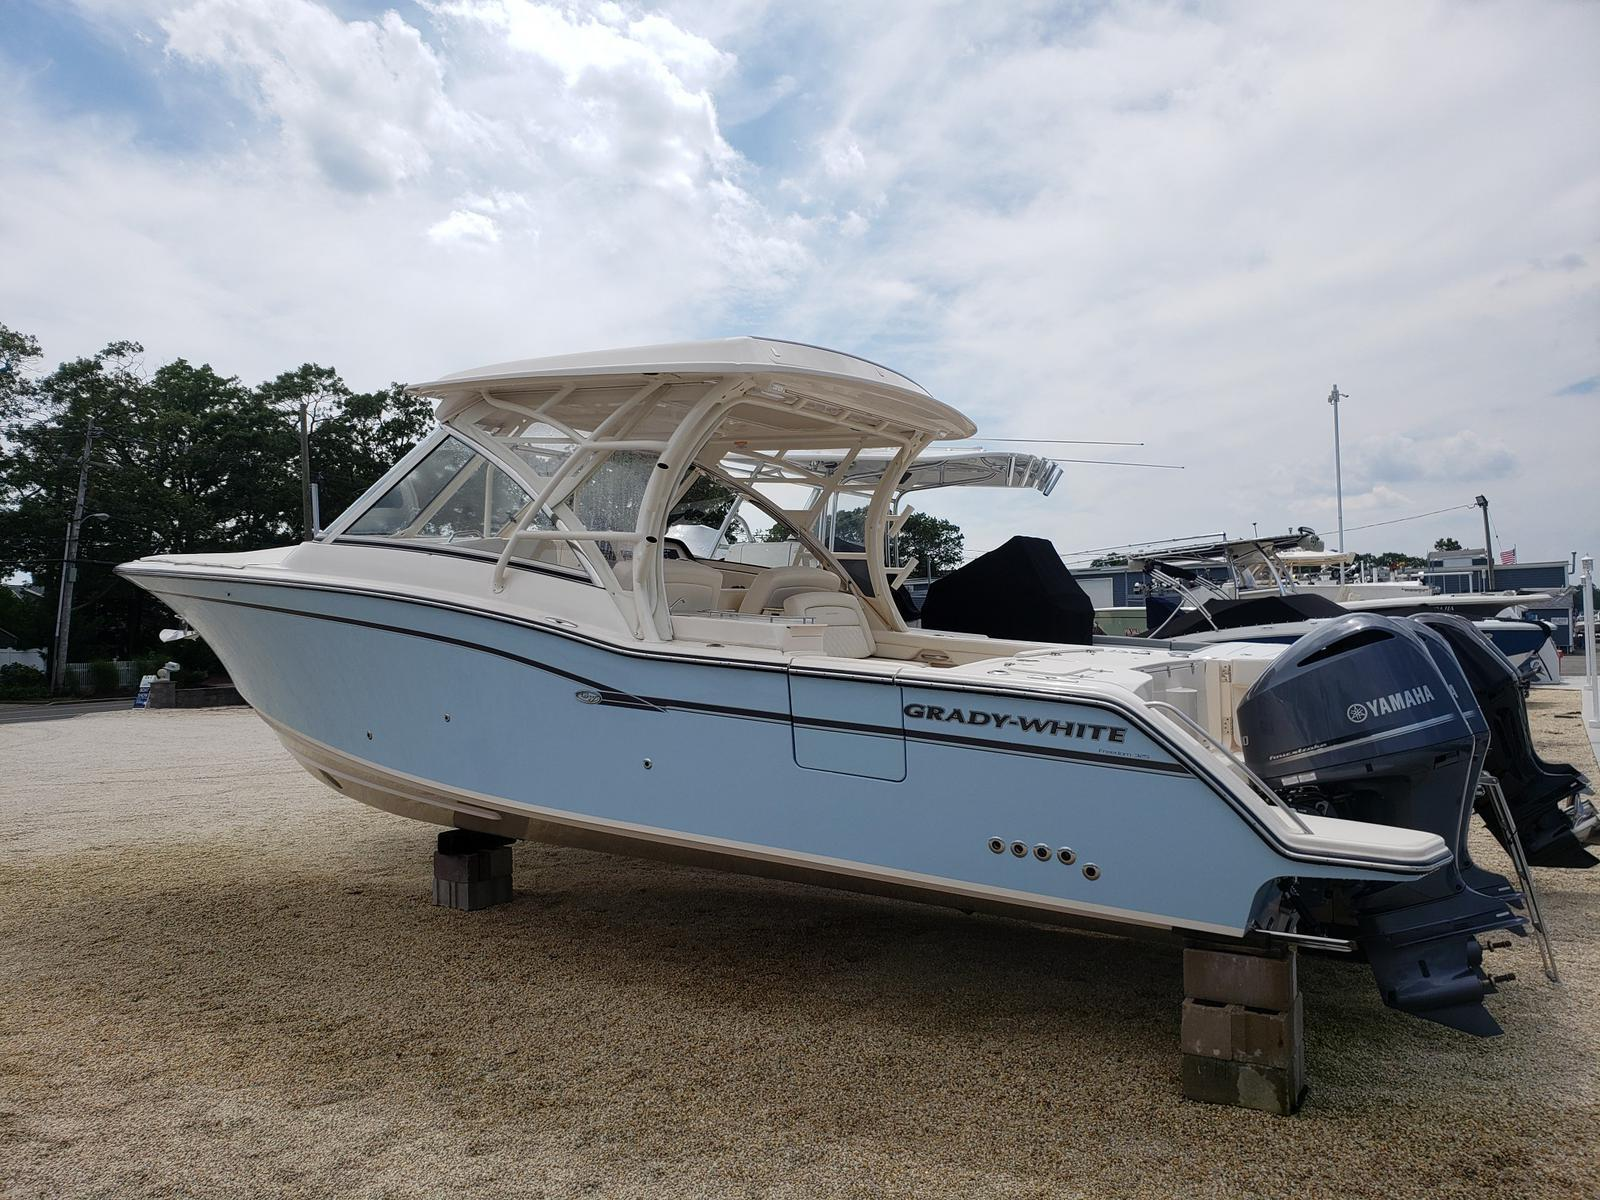 2019 Grady-White FREEDOM 325 for sale in Brick, NJ  Comstock Yacht